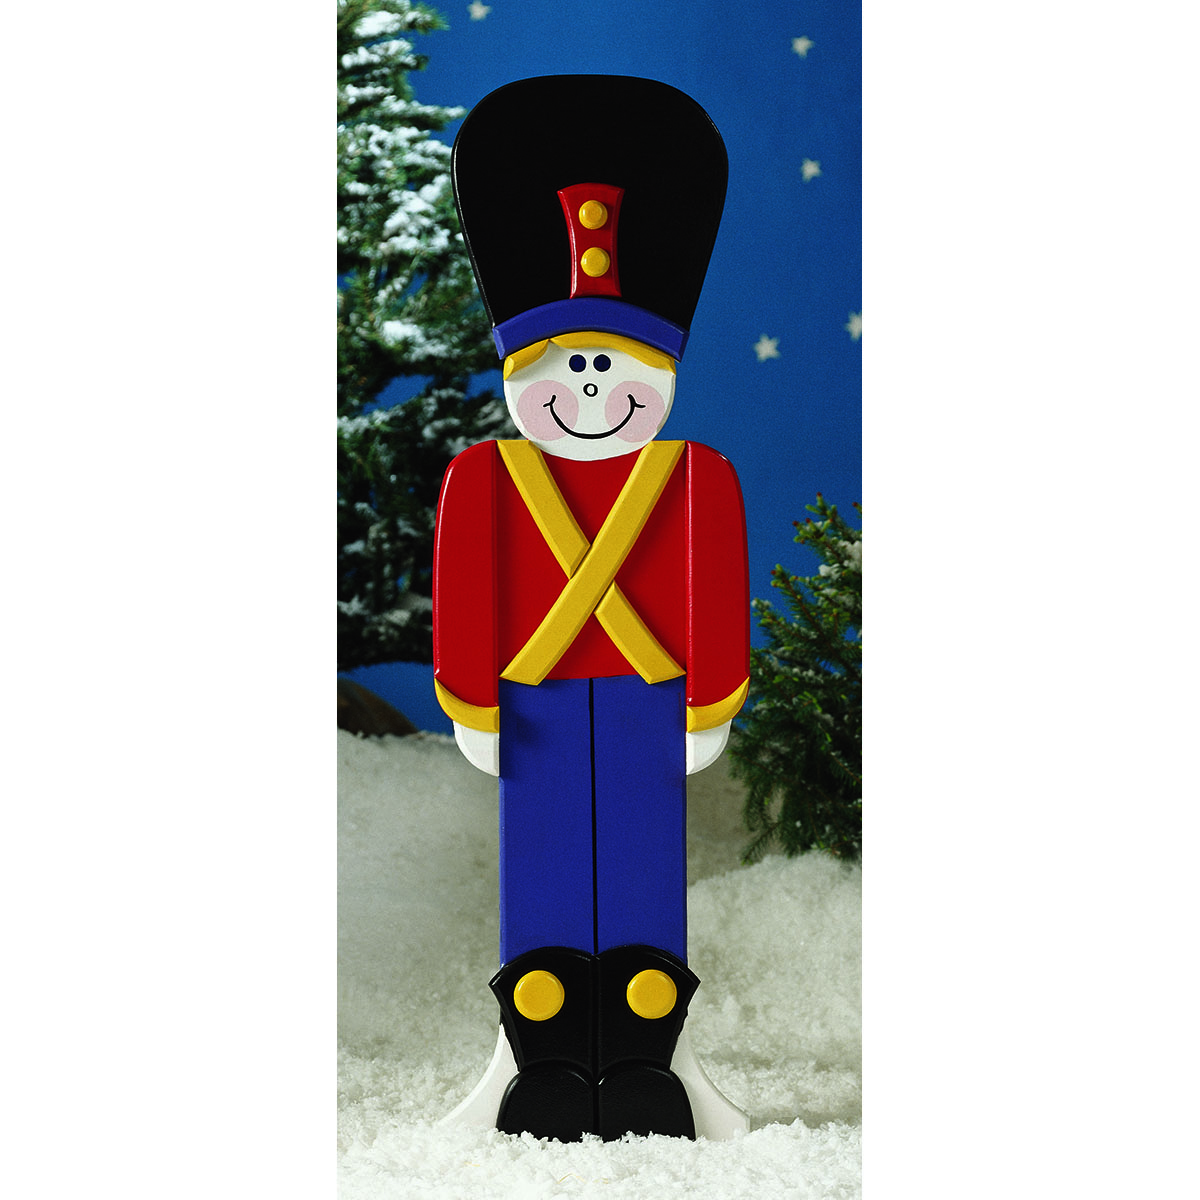 Toy Soldier : Large-format Paper Woodworking Plan